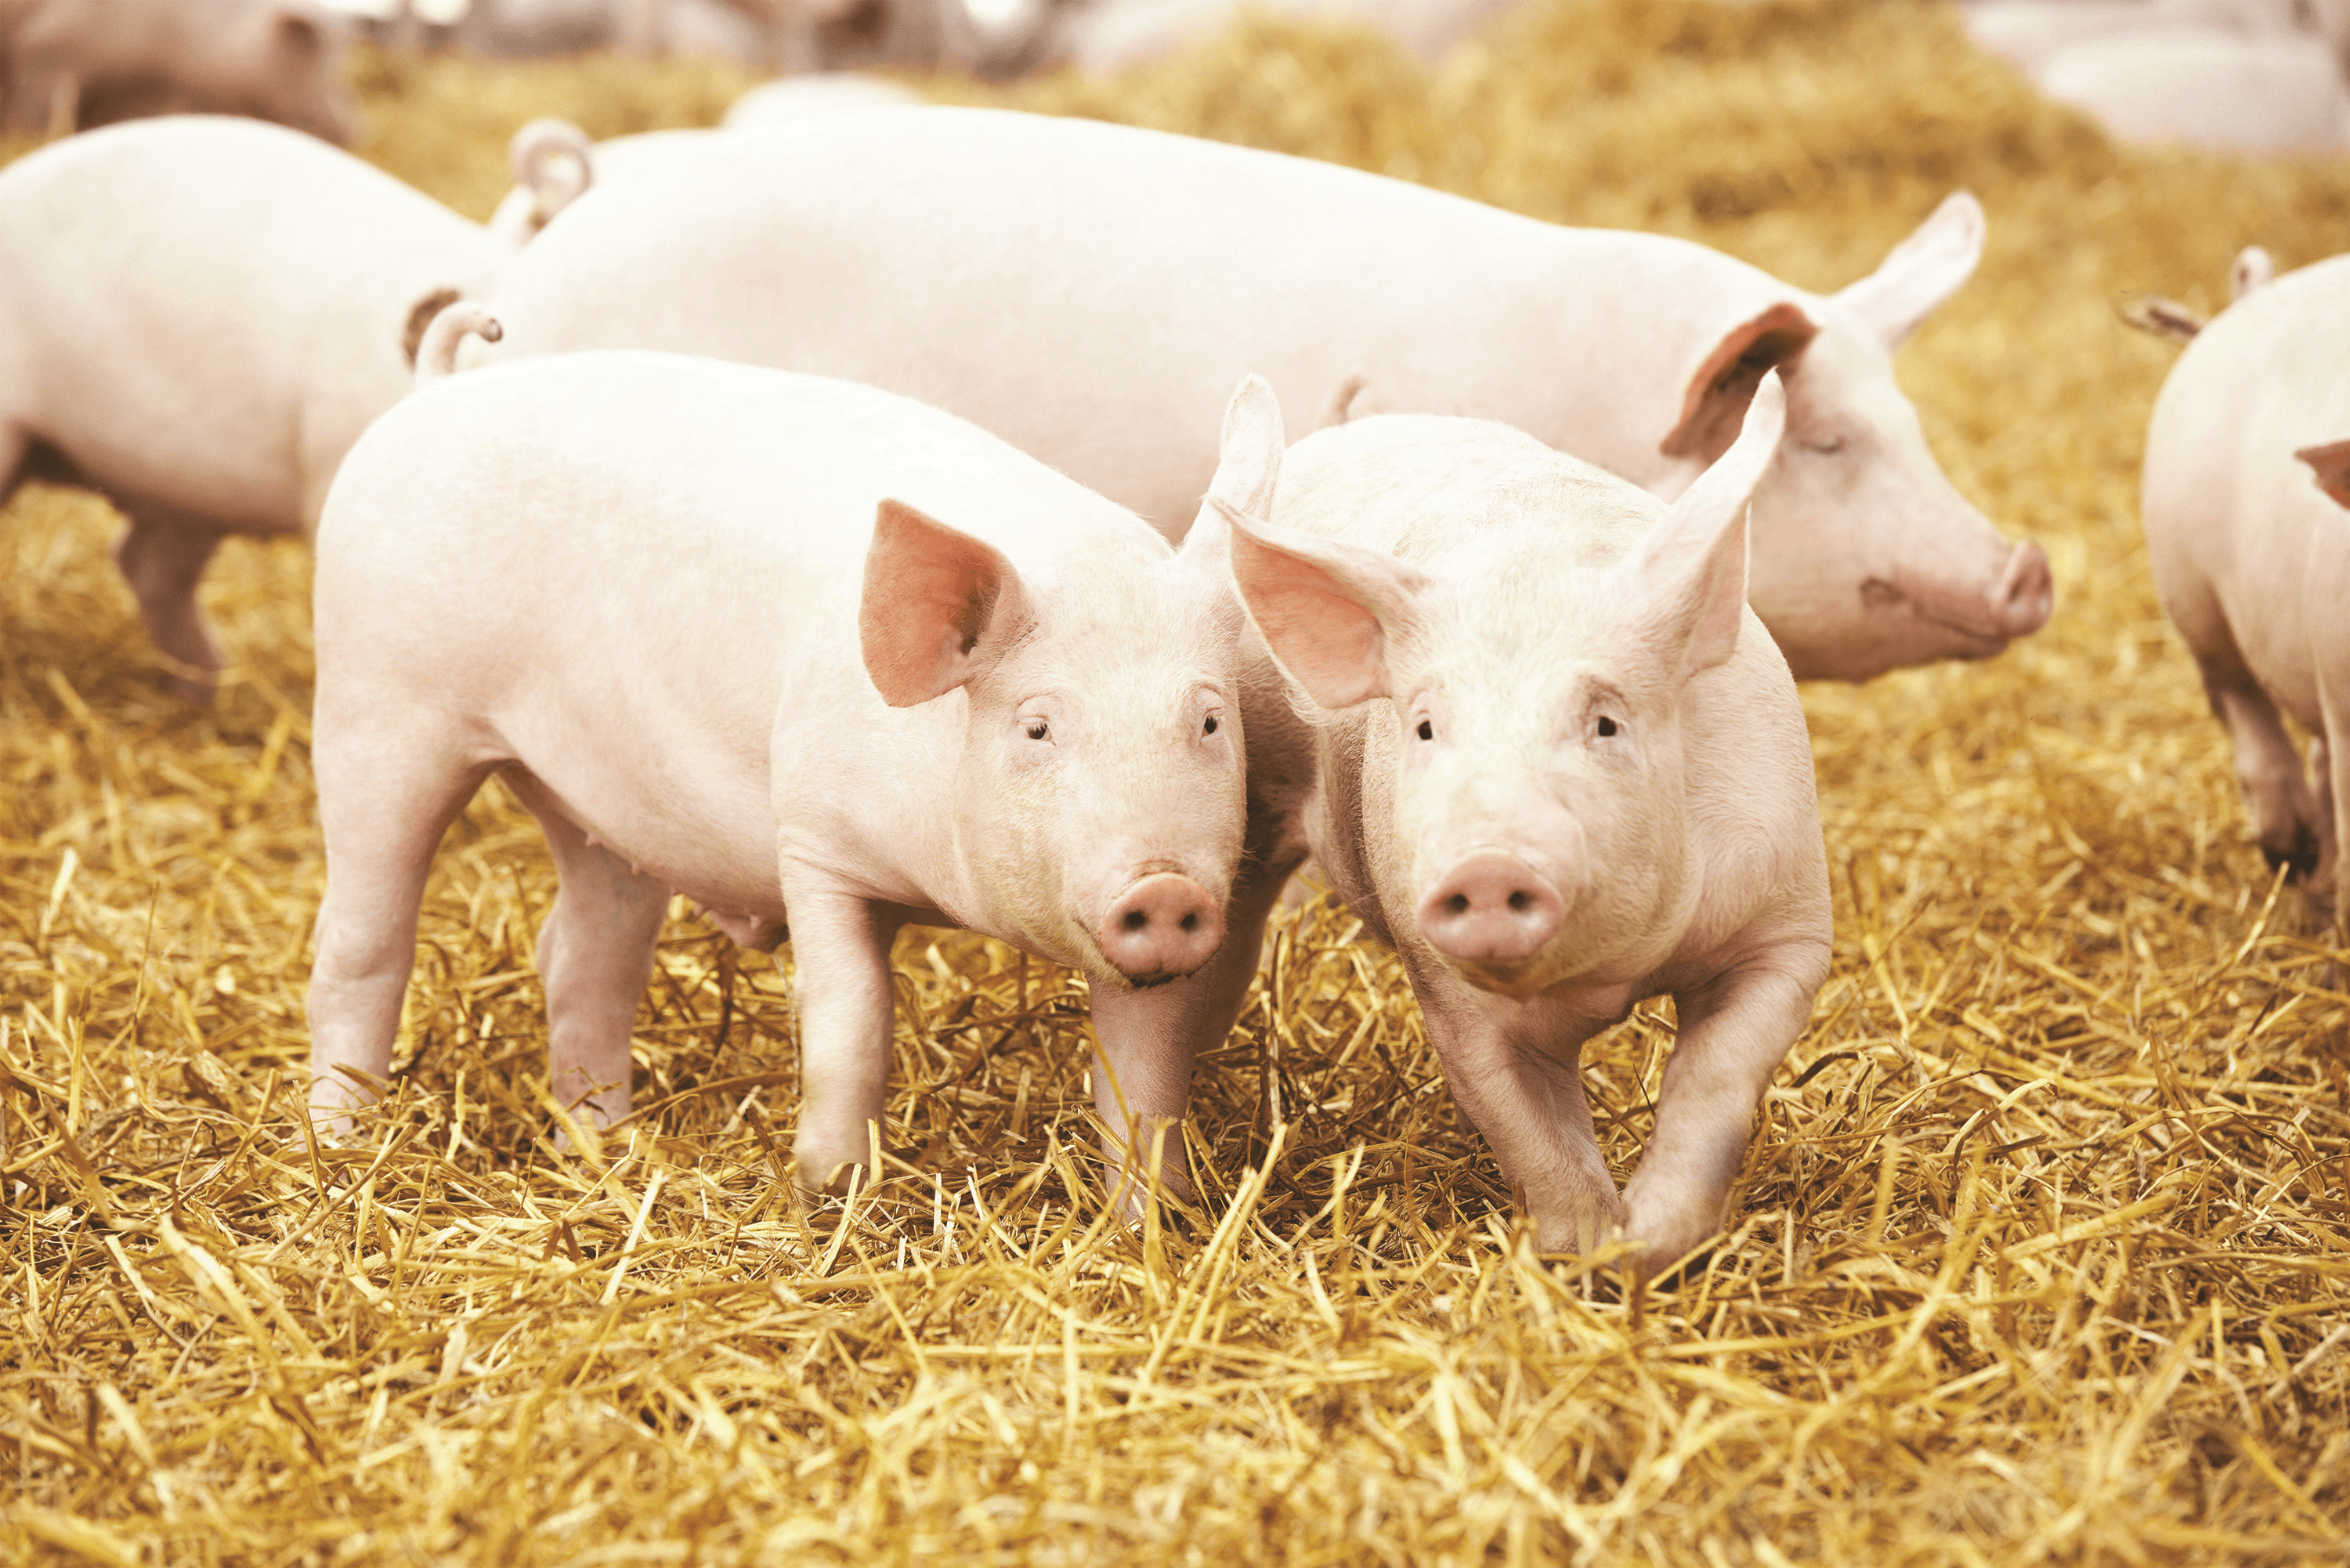 Swine nutritional experts identify future challenges for the industry